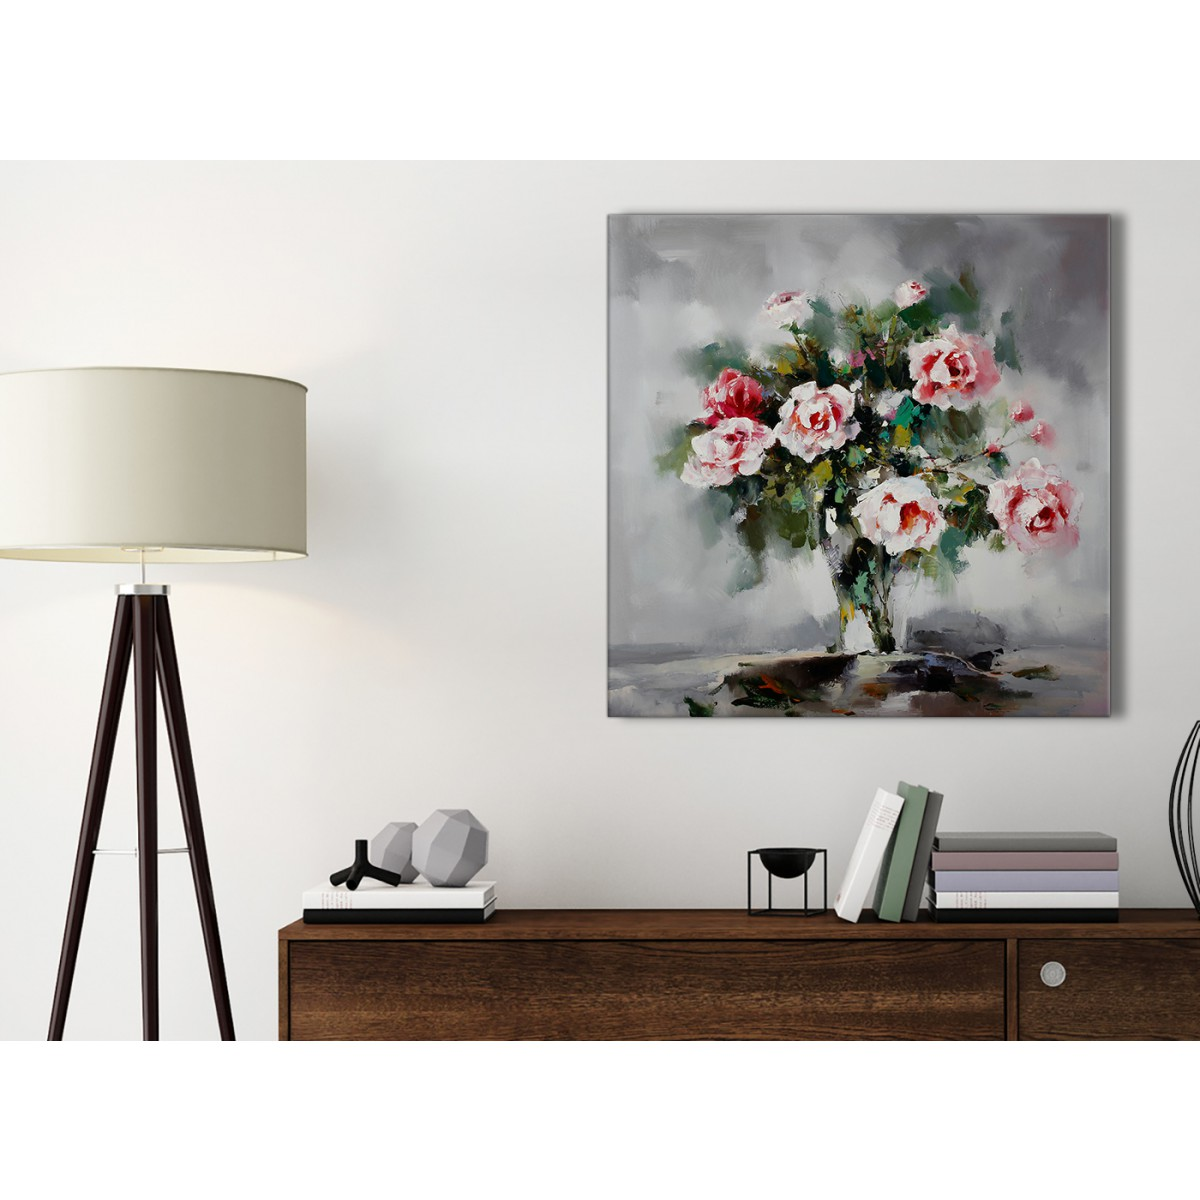 Pink Grey Flowers Painting Kitchen Canvas Wall Art Accessories Abstract 1s442s 49cm Square Print